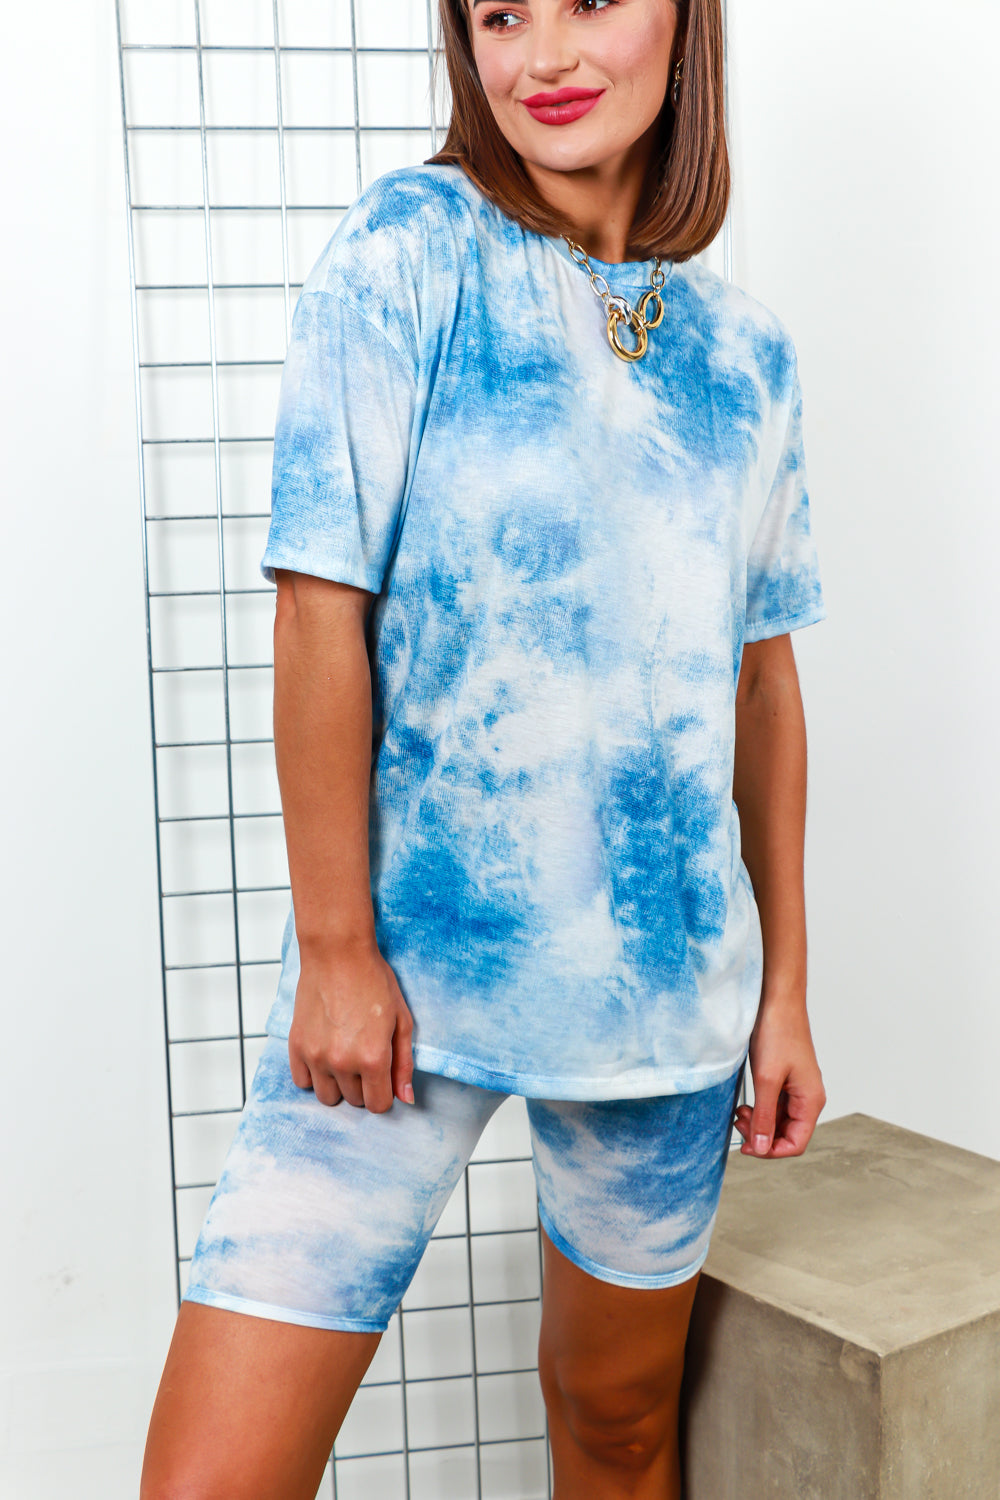 Co-ord Coordinate Set T-shirt Cycle Short Tie Dye- DLSB Women's Fashion